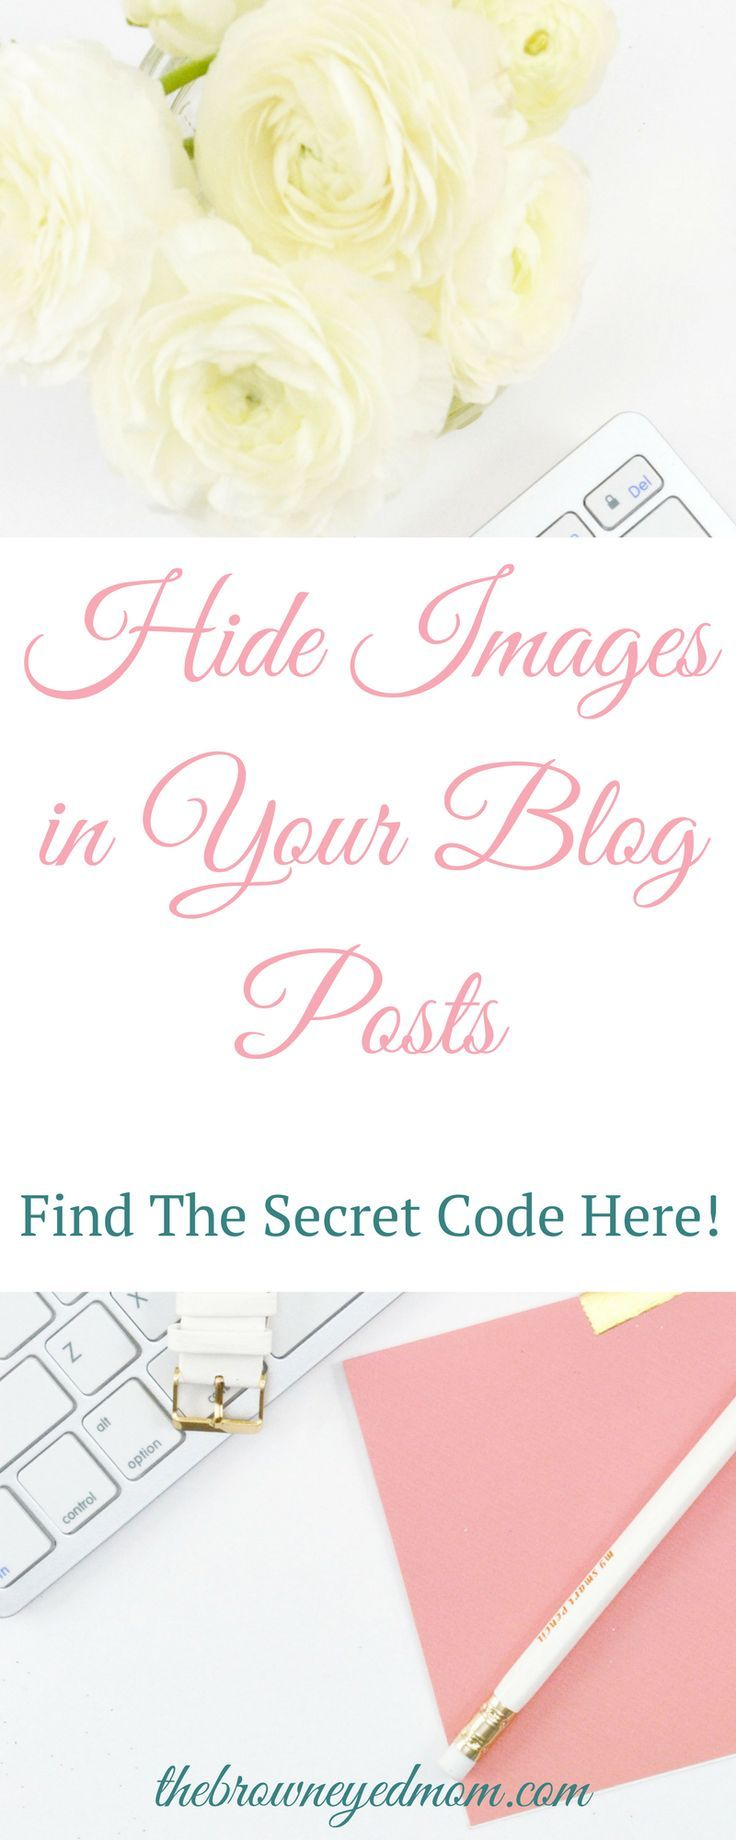 """Do you want to have more than one image on your blog posts and don't want them cluttering up the post? Are you wondering how other bloggers have endless images, but you don't see them in their blog posts? Find out here the """"secret"""" code bloggers use to add hidden images to their blog posts! #blogging #pinterestmarketing"""